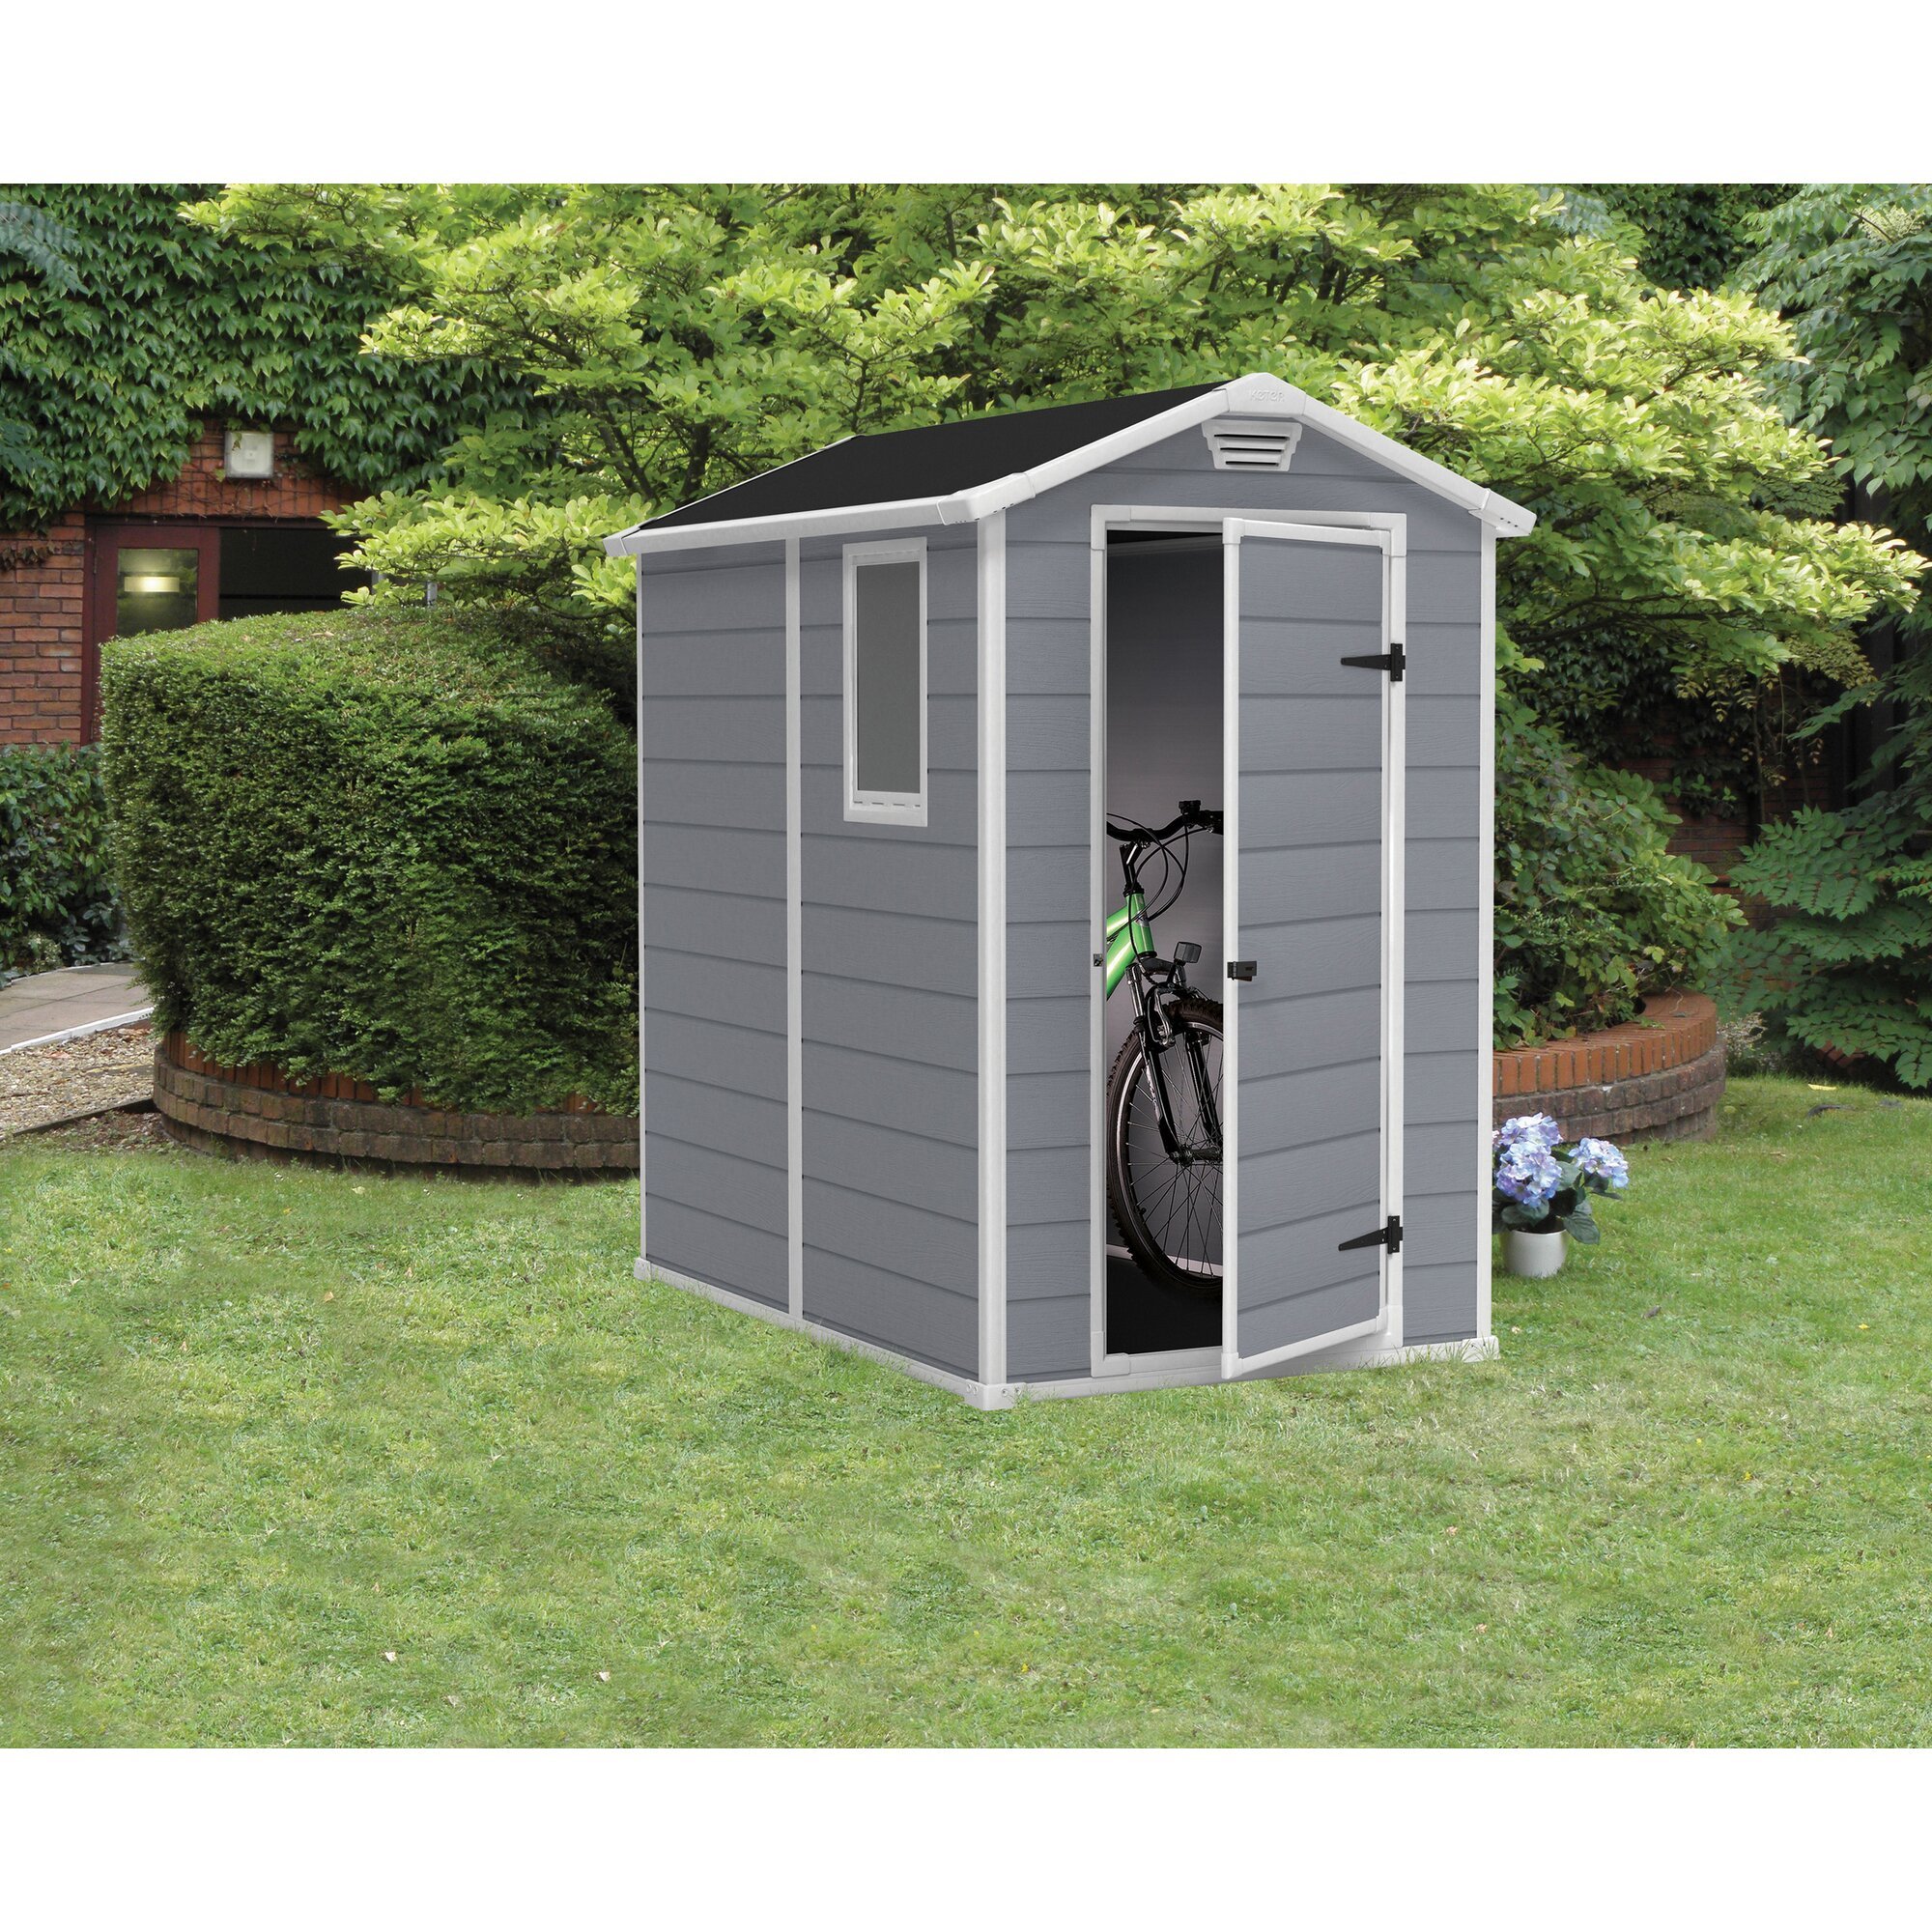 Keter manor 4 ft w x 6 3 ft d resin vertical storage for Garden shed 4x6